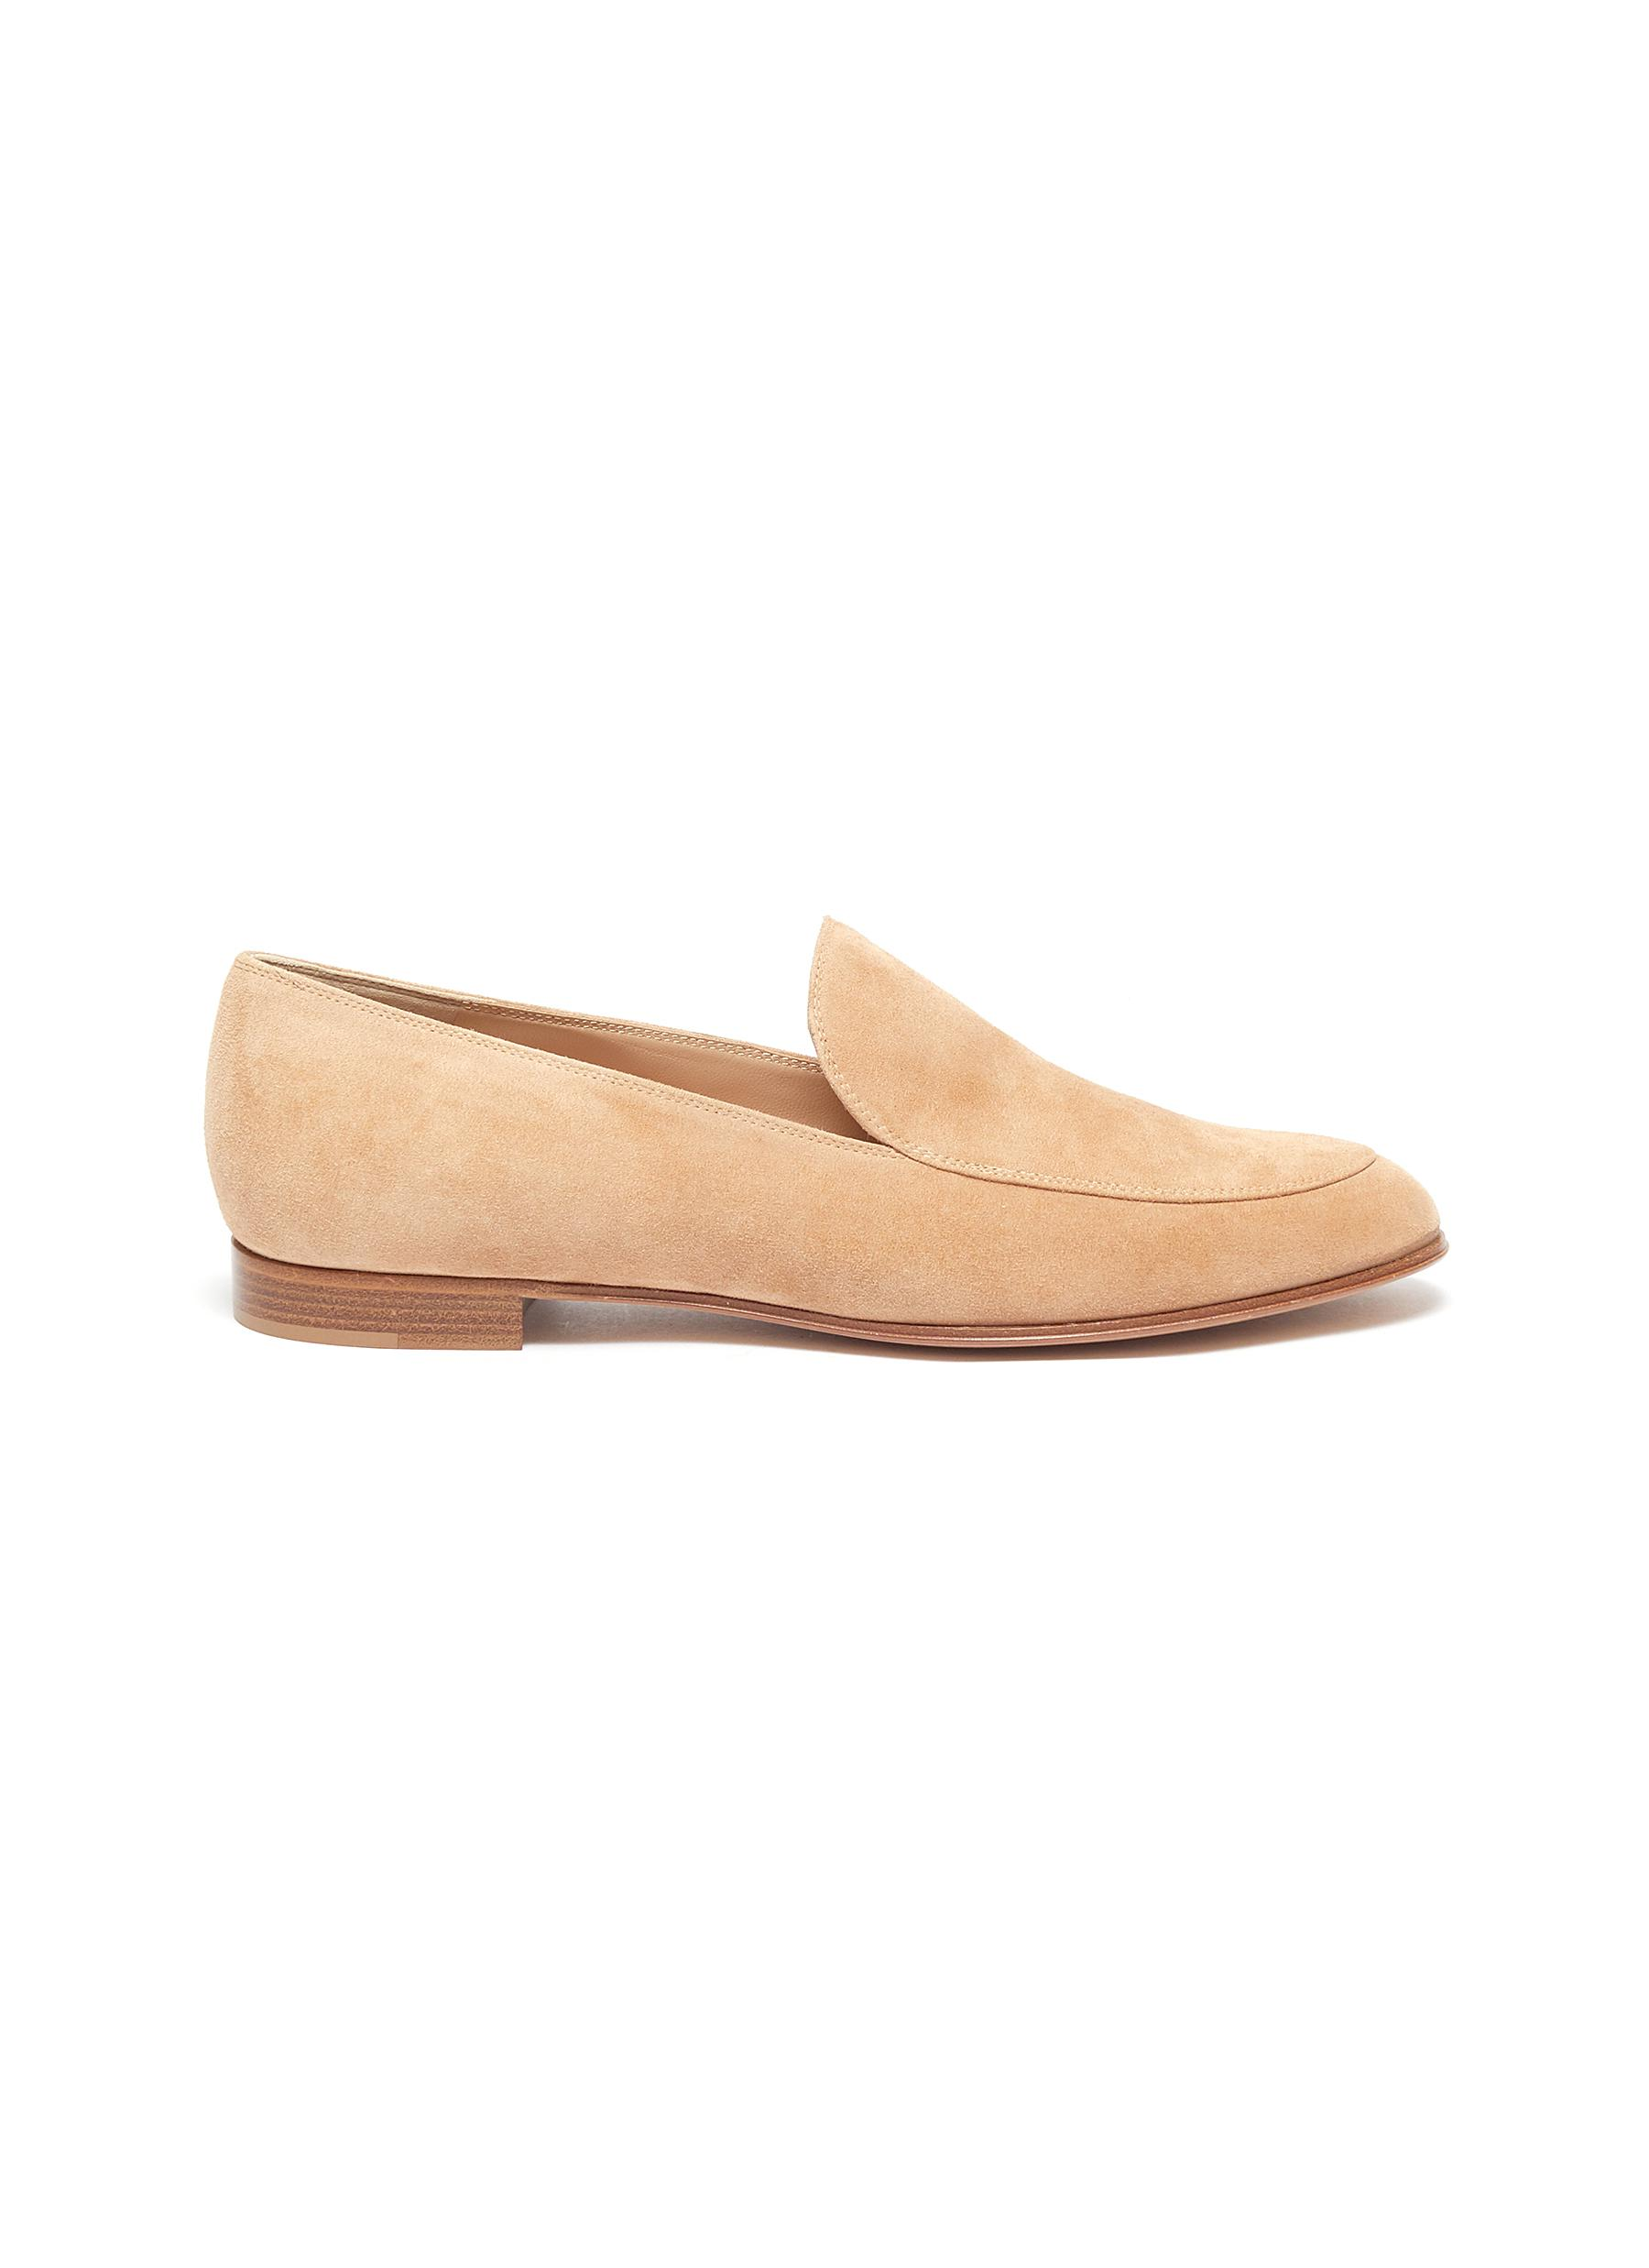 Gianvito Rossi Flats Marcel suede loafers